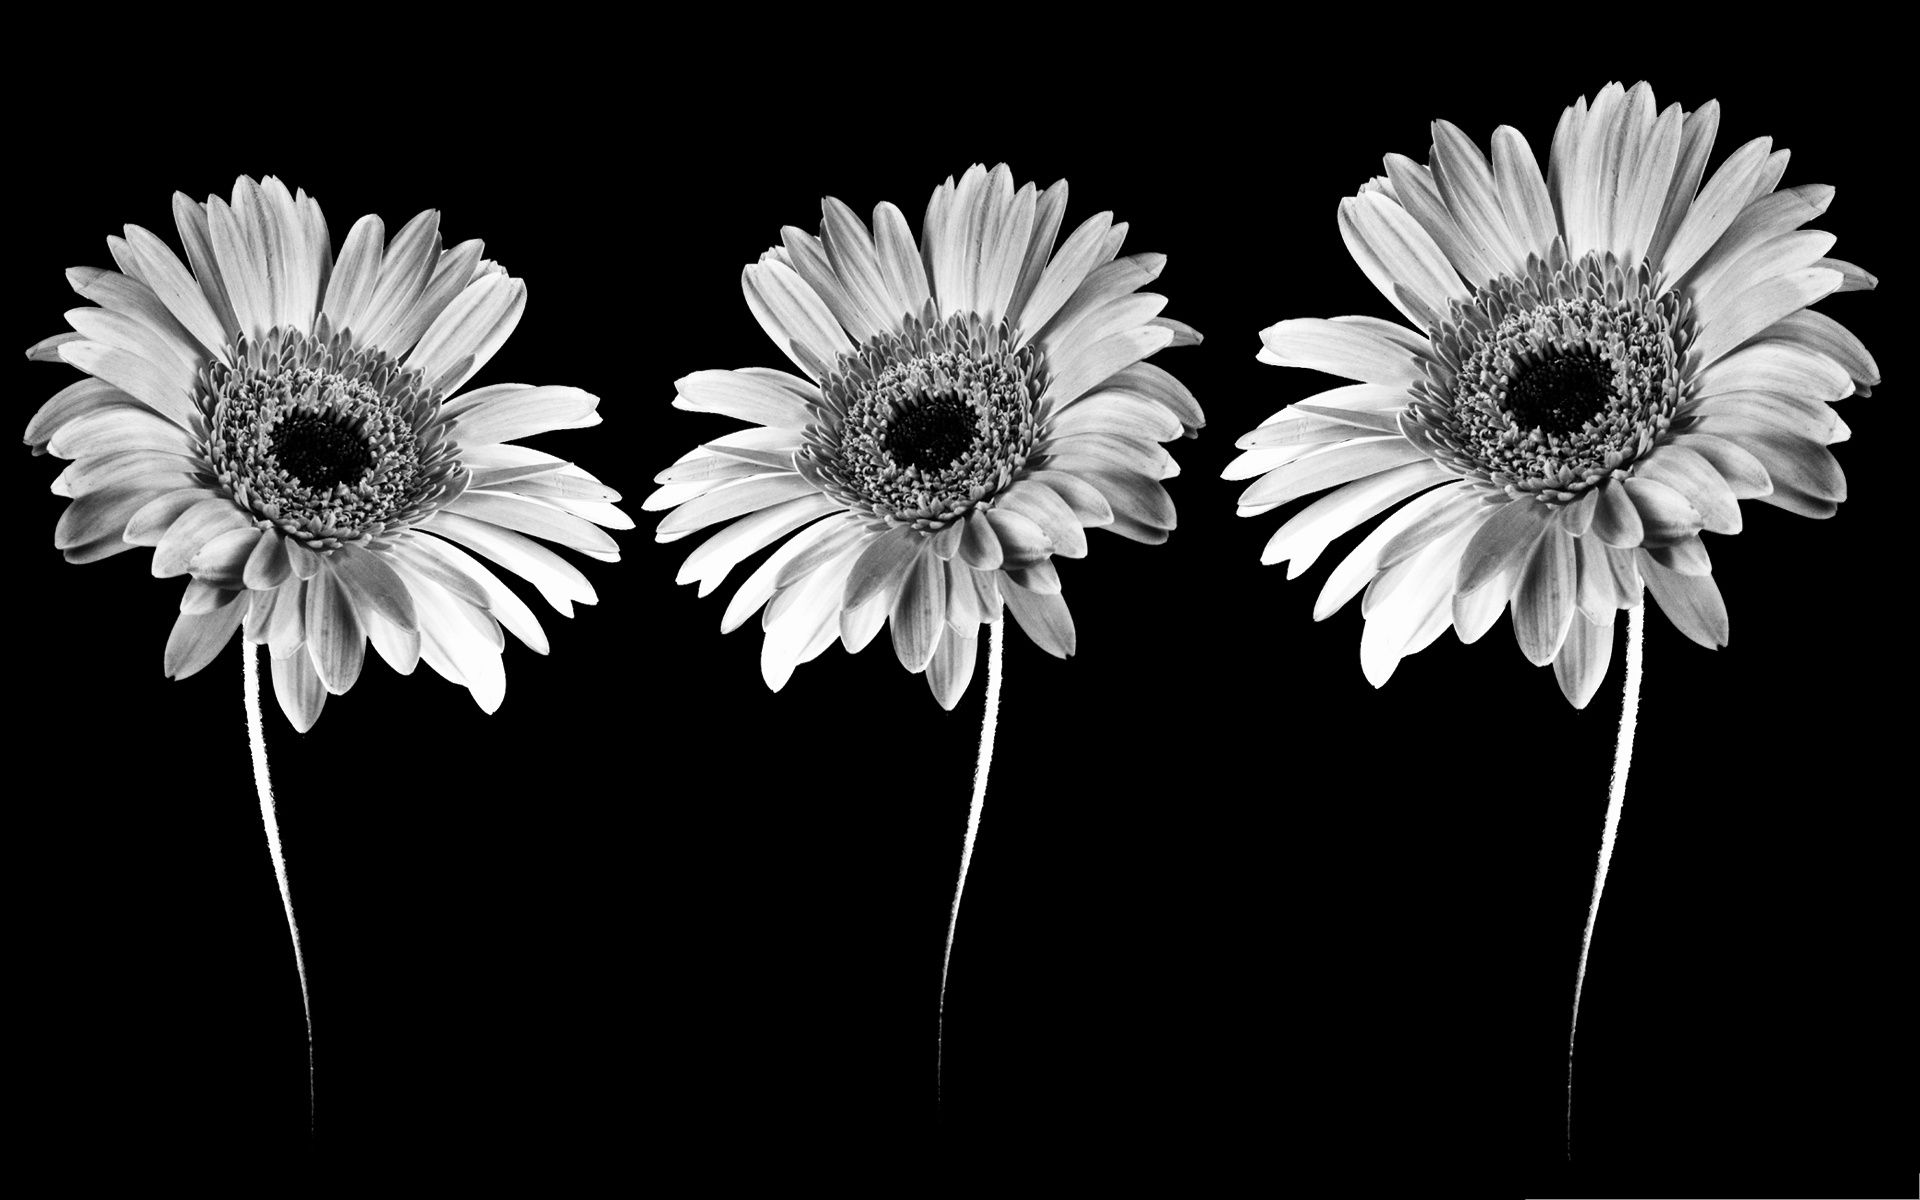 Astonishing Black And White Background Hd Wallpaper